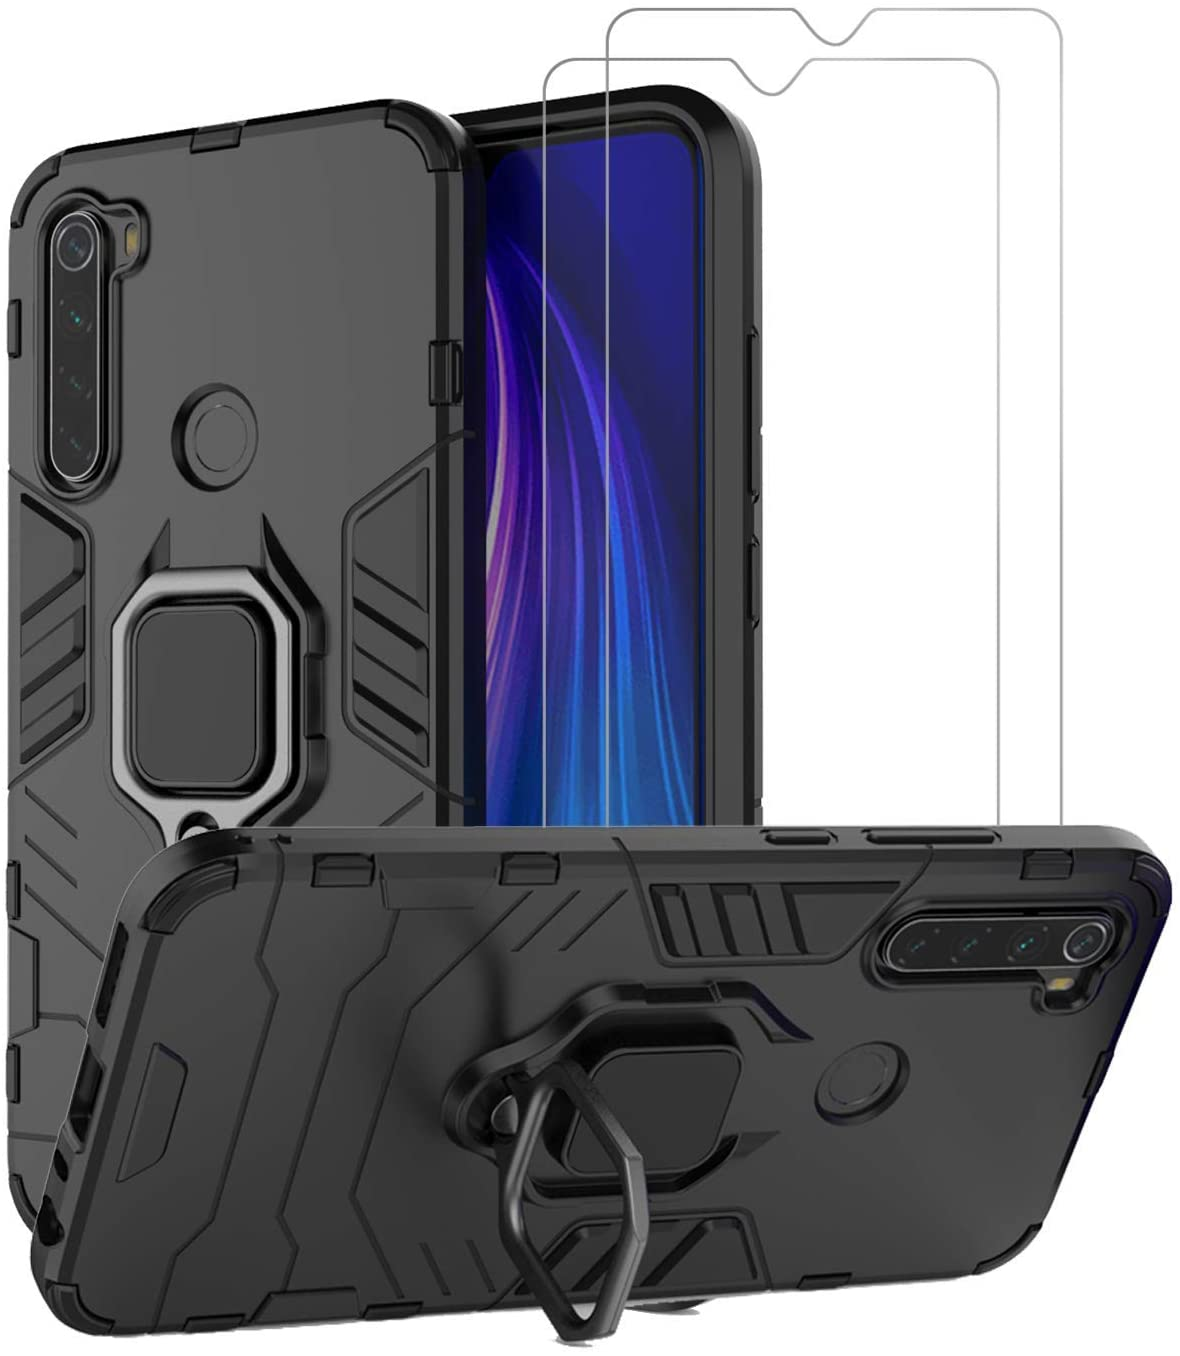 Urspasol for Xiaomi Redmi Note 8 Case with Screen Protector Tempered Glass Hybrid Heavy Duty Armor Protective Bumper Cover with 360° Degree Ring Holder Kickstand (Black)